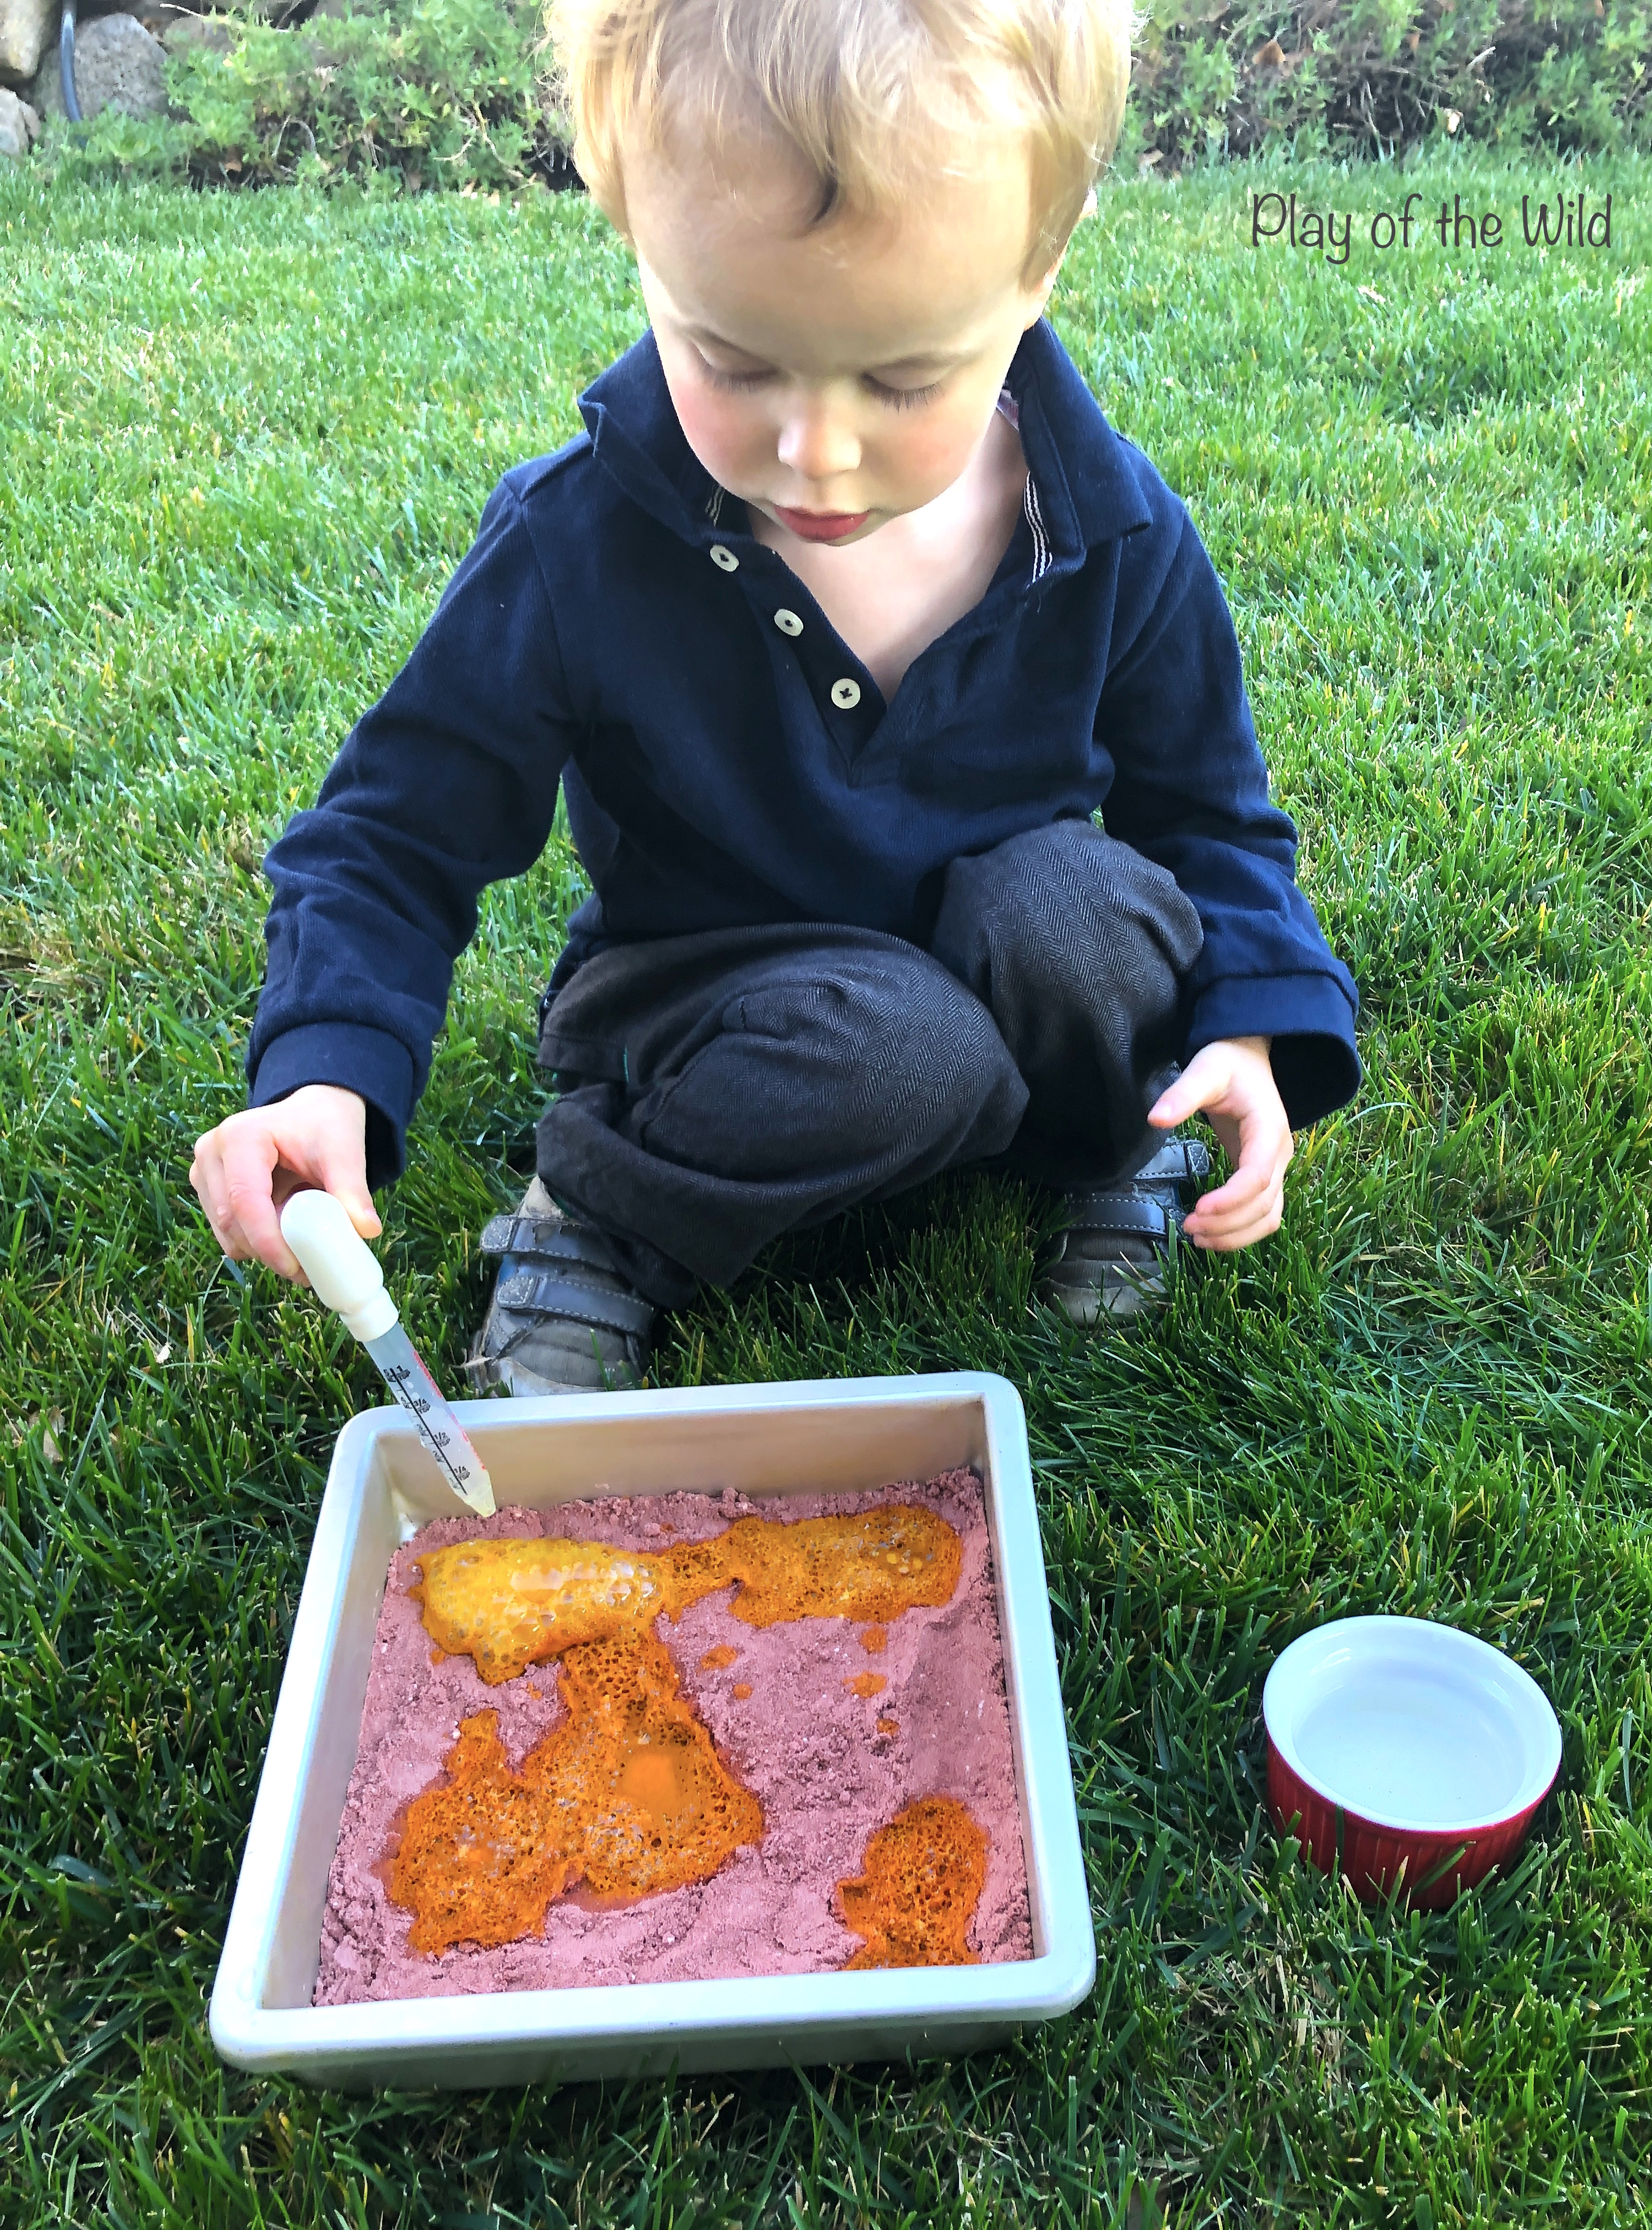 baking soda and vinegar science experiment for kids. ph turmeric indicator